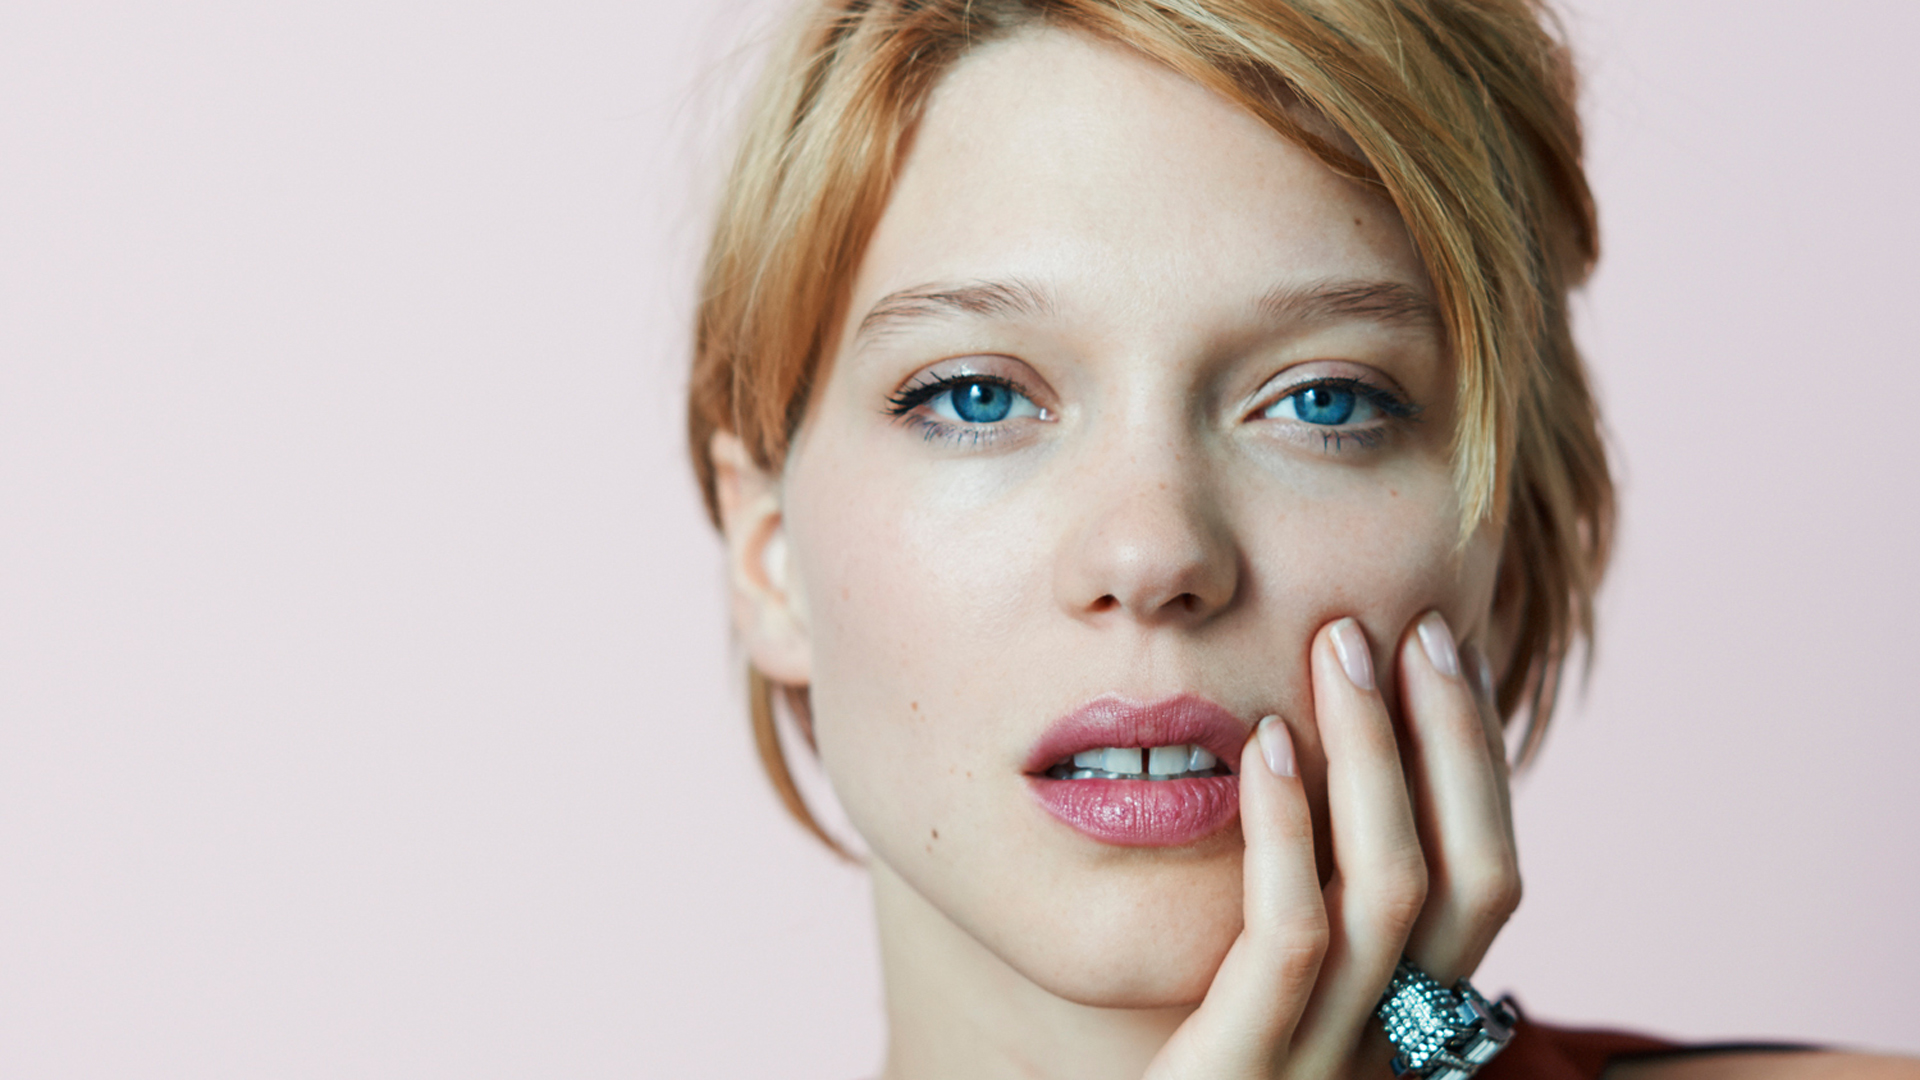 Lea Seydoux Face Wallpaper 54986